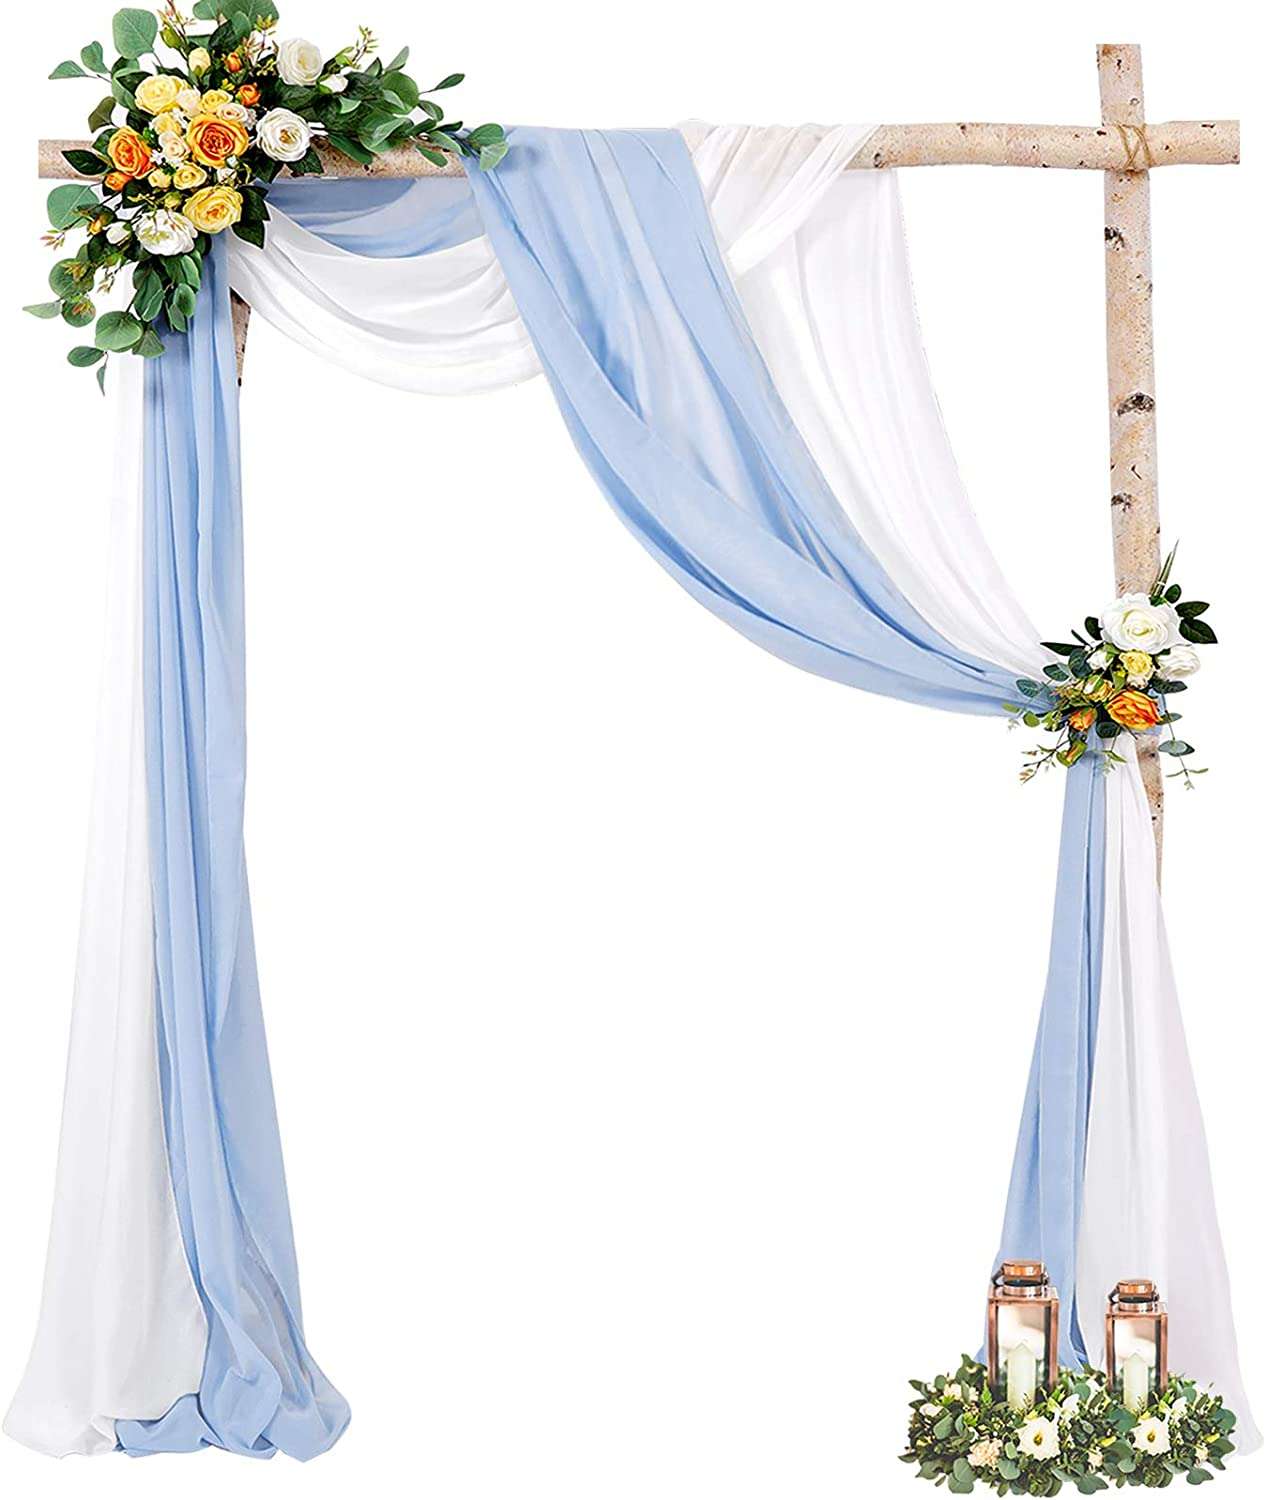 Wedding Arch Panel Chiffon Fabric Drapery 6 Yards White Baby Blue Wedding Arches for Ceremony Reception Photo Backdrop Curtain Party Ceiling Decor Backdrop 2 Panel